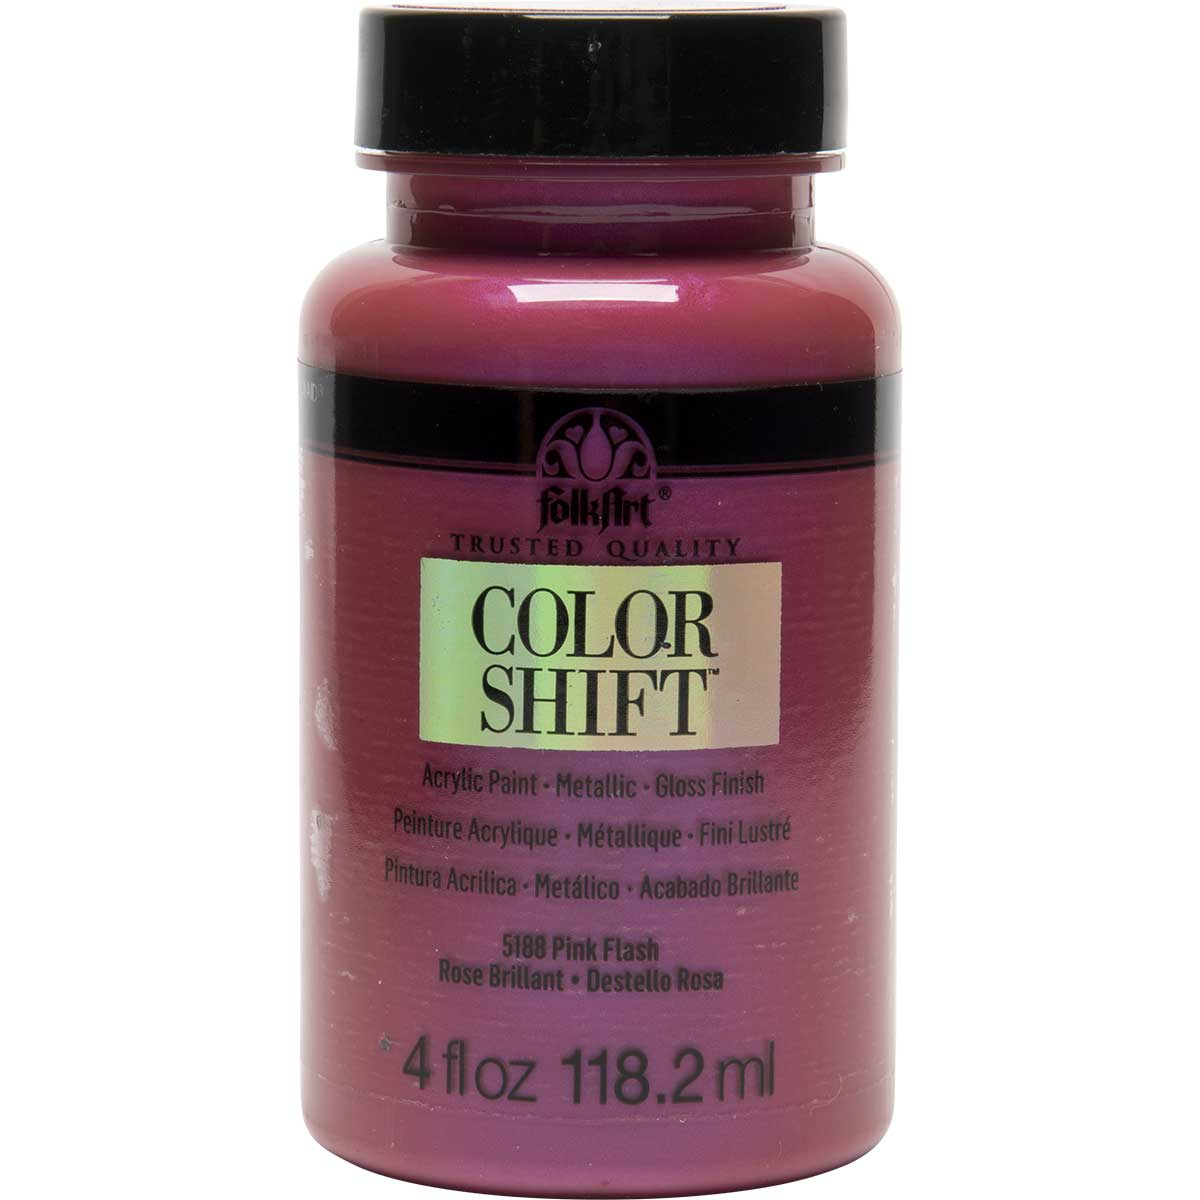 FolkArt ® Color Shift™ Acrylic Paint - Pink Flash, 4 oz.